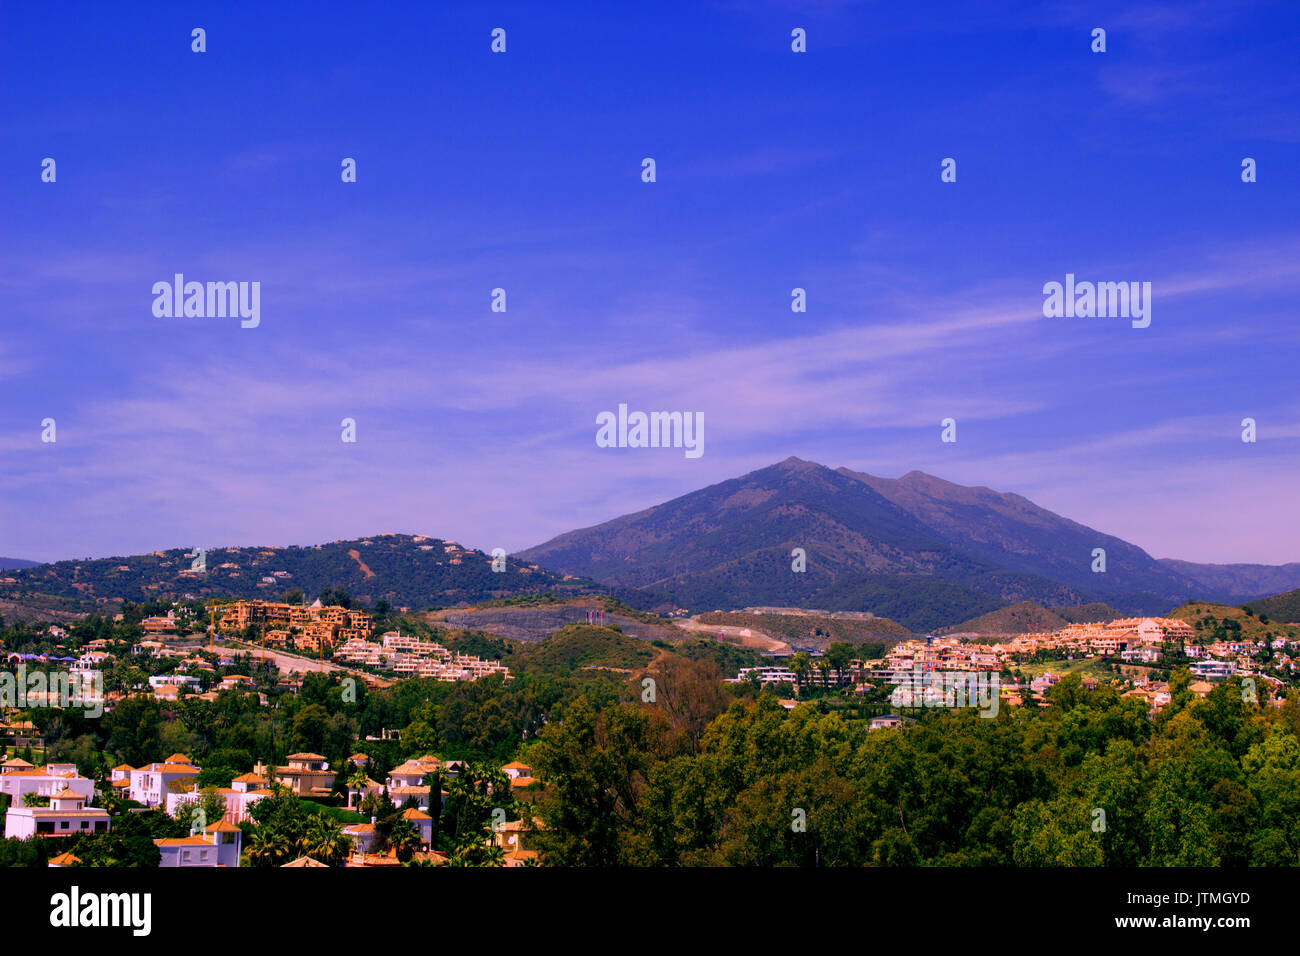 Mountain. Beautiful view. Costa del Sol, Andalusia, Spain. - Stock Image